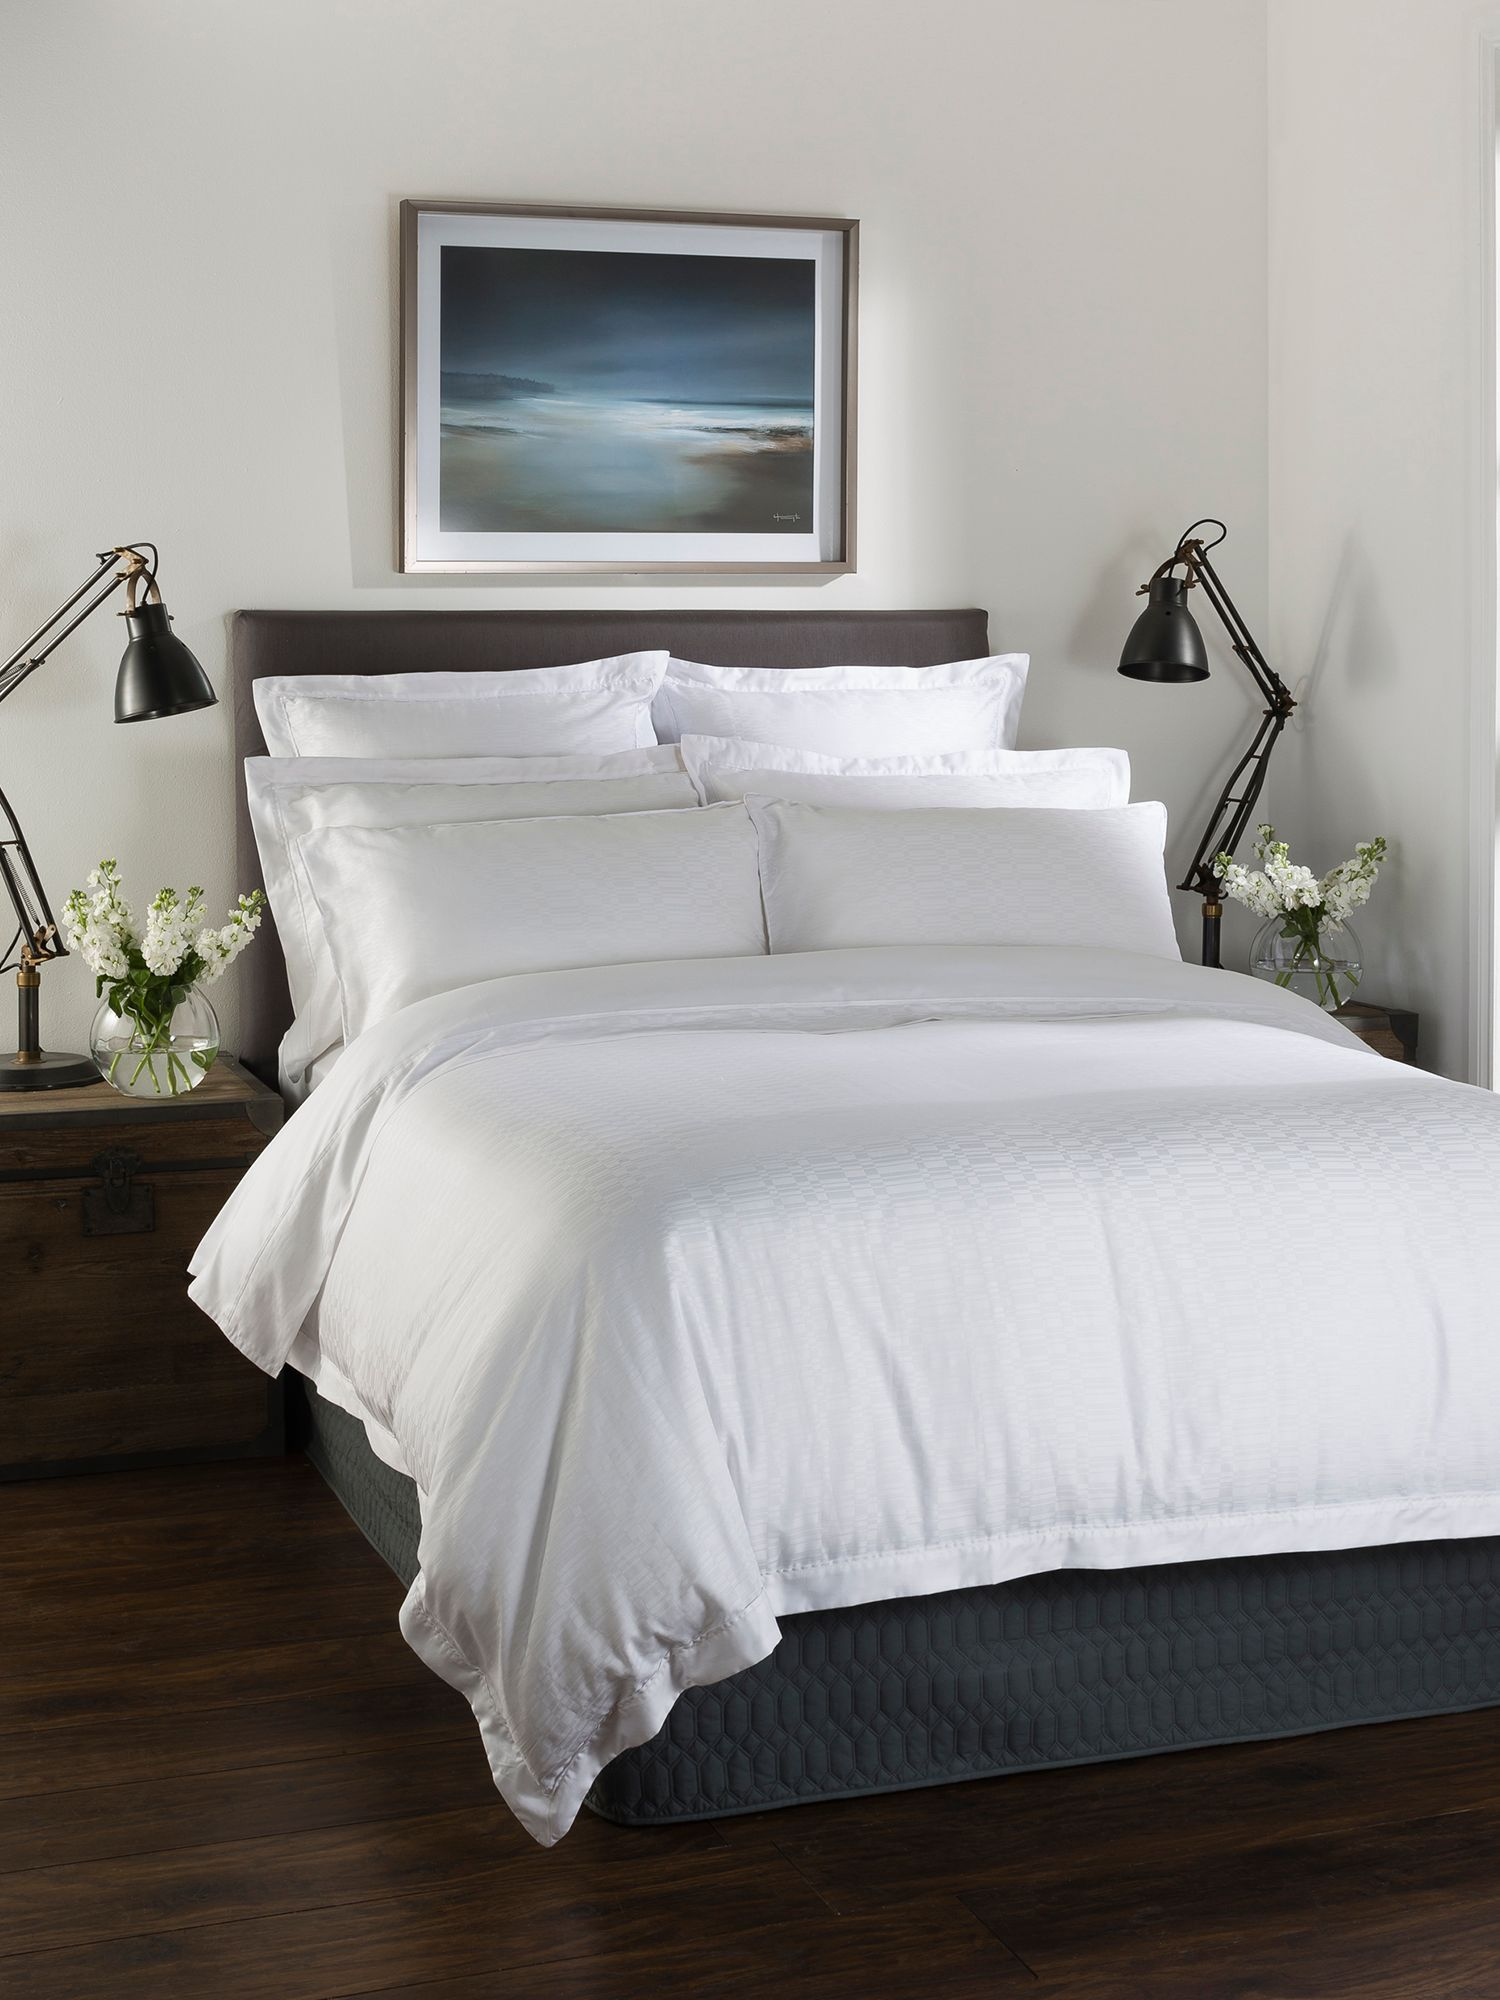 Calgary single duvet white